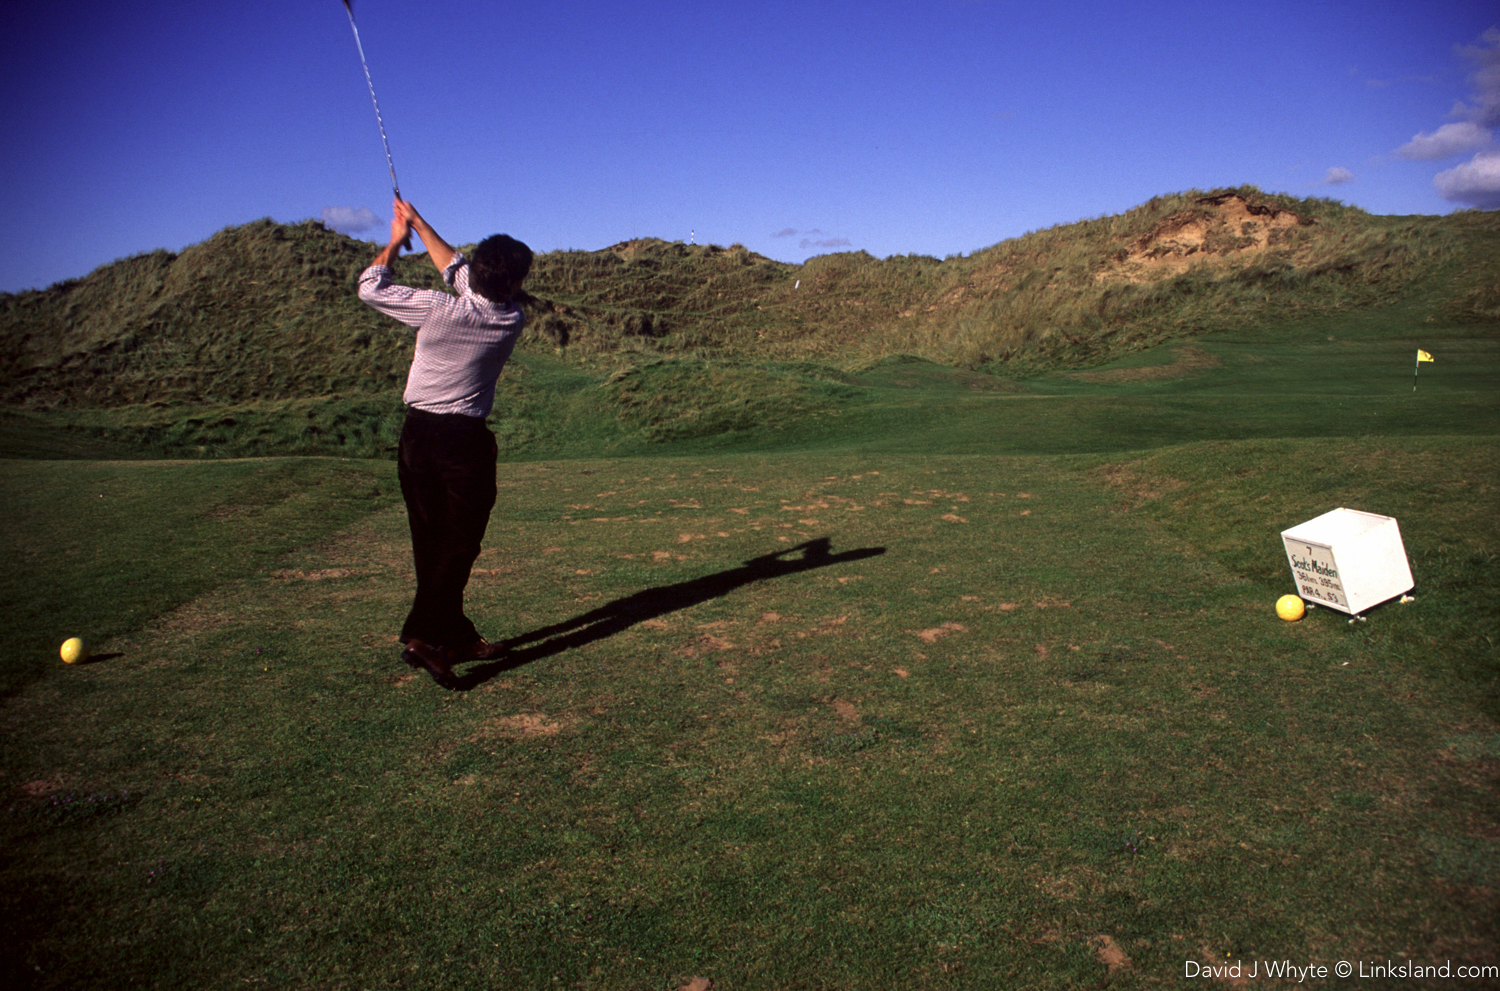 A blast from the past... back in the early 90's, the young Alistair Tait of Golf Monthly tees off into the great unknown.